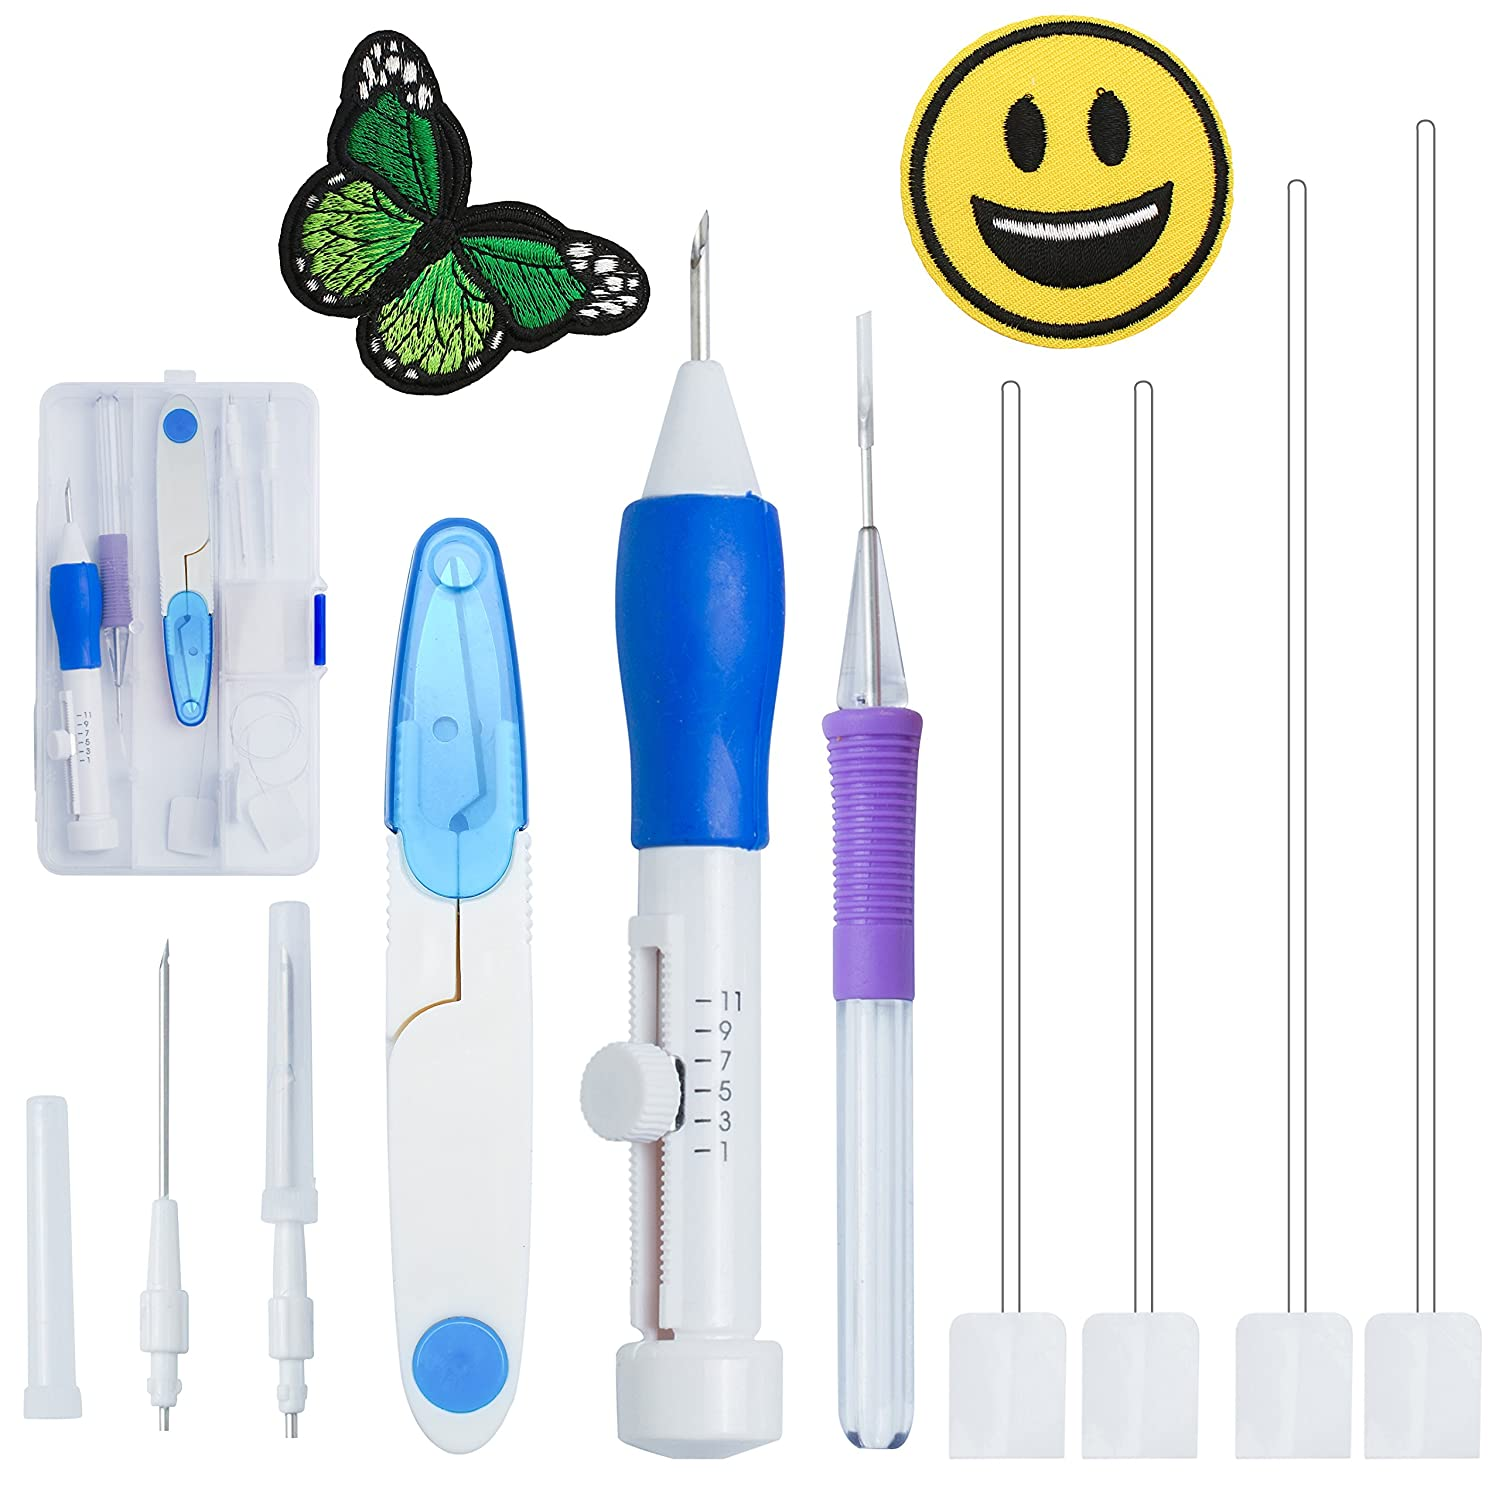 Magic Embroidery Pen Punch Needles - BoChang Magic Embroidery Pen Set Embroidery Kits Punch Needle Kit Knitting Sewing Tool for Embroidery DIY Threaders Sewing 4336936439